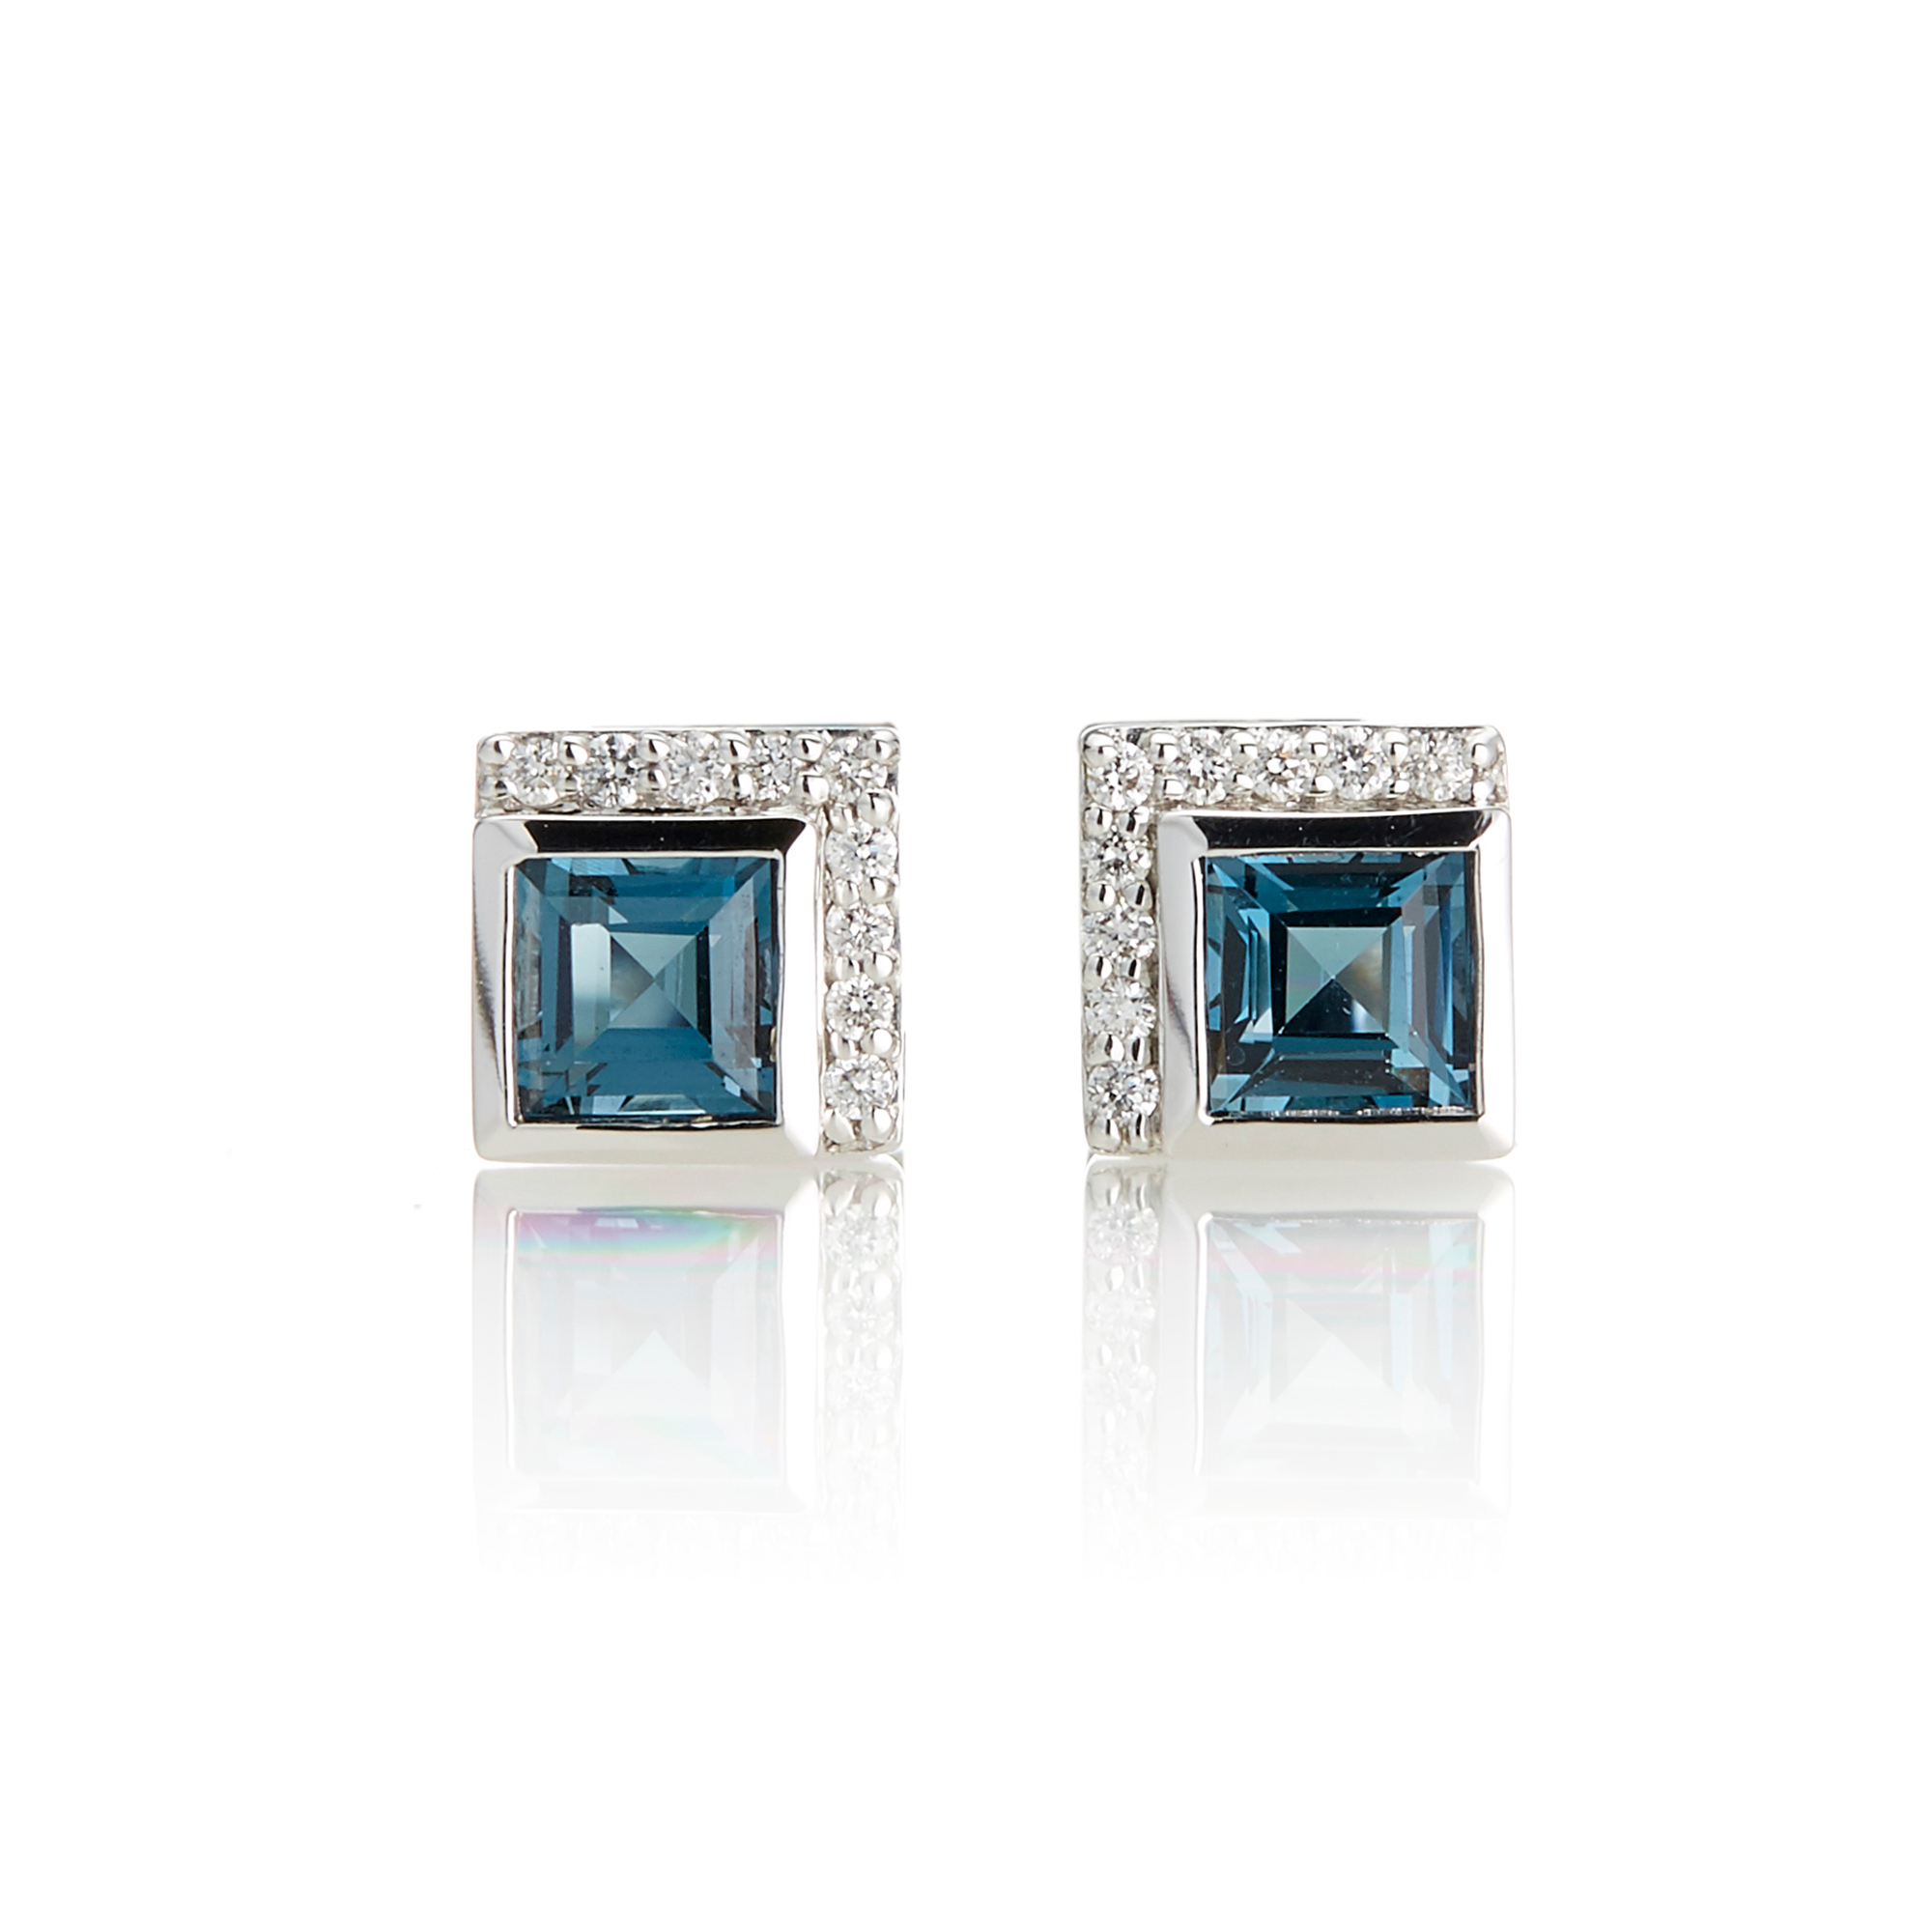 Jane Taylor London Blue Topaz & Diamond Petite Square Stud Earrings